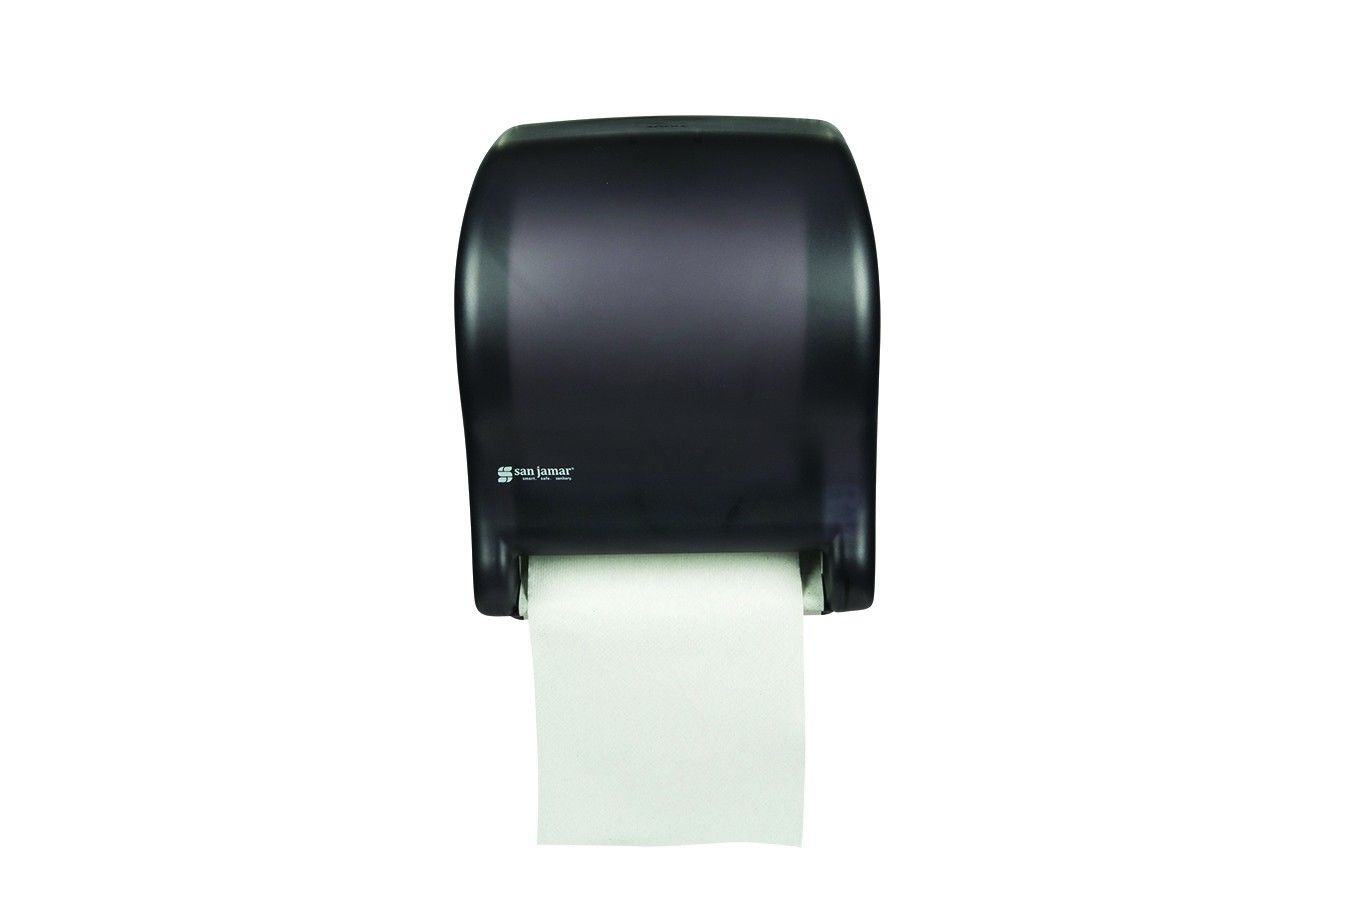 Tear-N-Dry Essence Touchless Towel Dispenser,11 3/4 x 9 1/8 x 15, Black Pearl